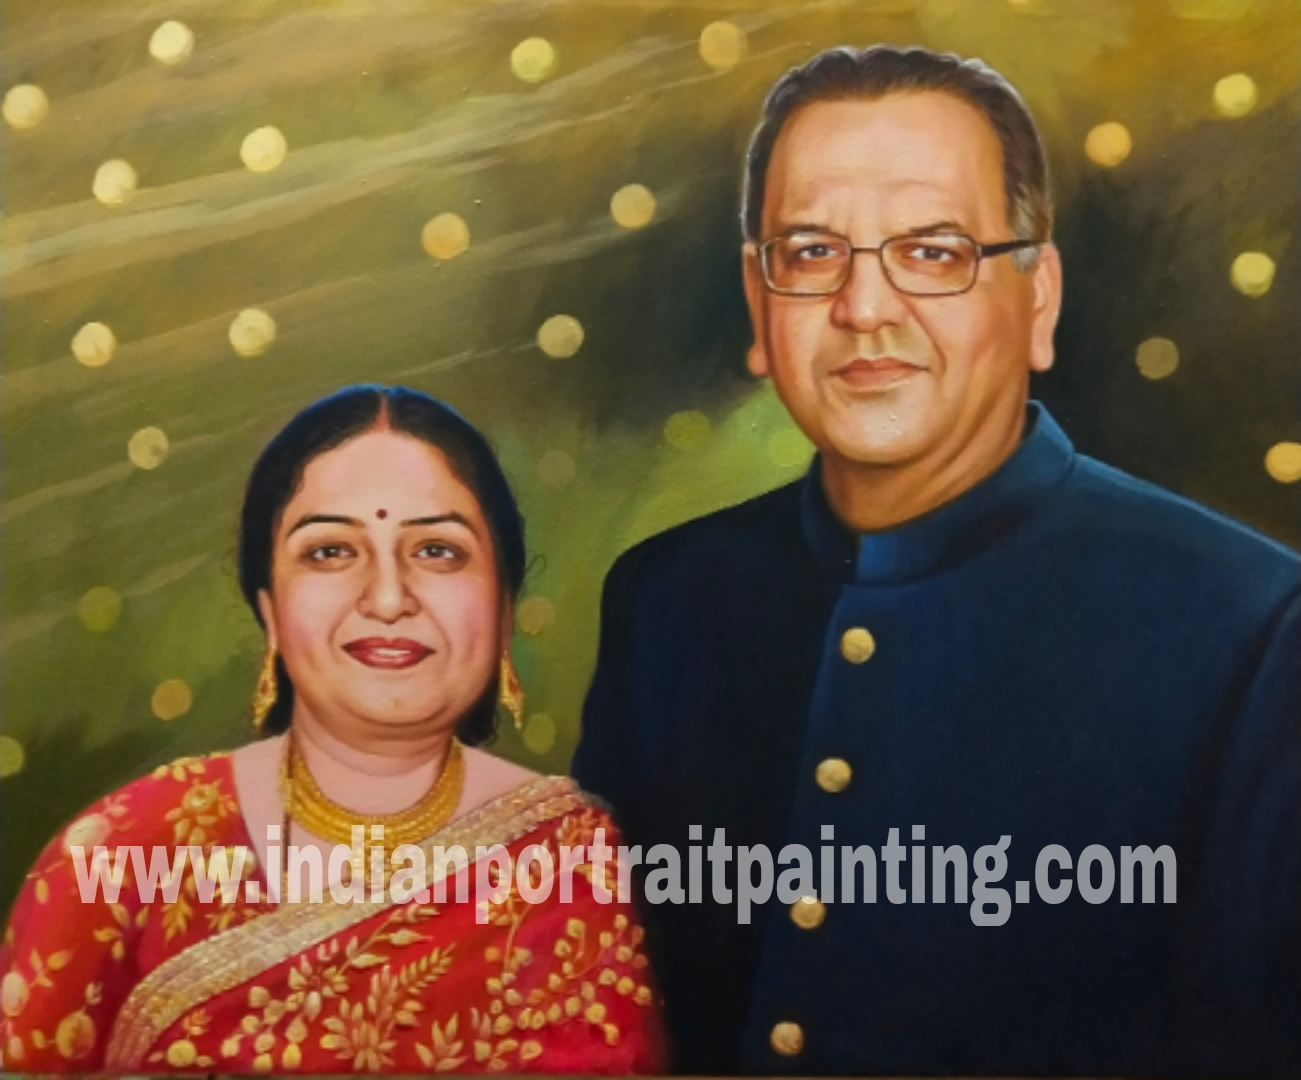 Perfect wedding anniversary gift for parents-in-laws - oil portrait painting